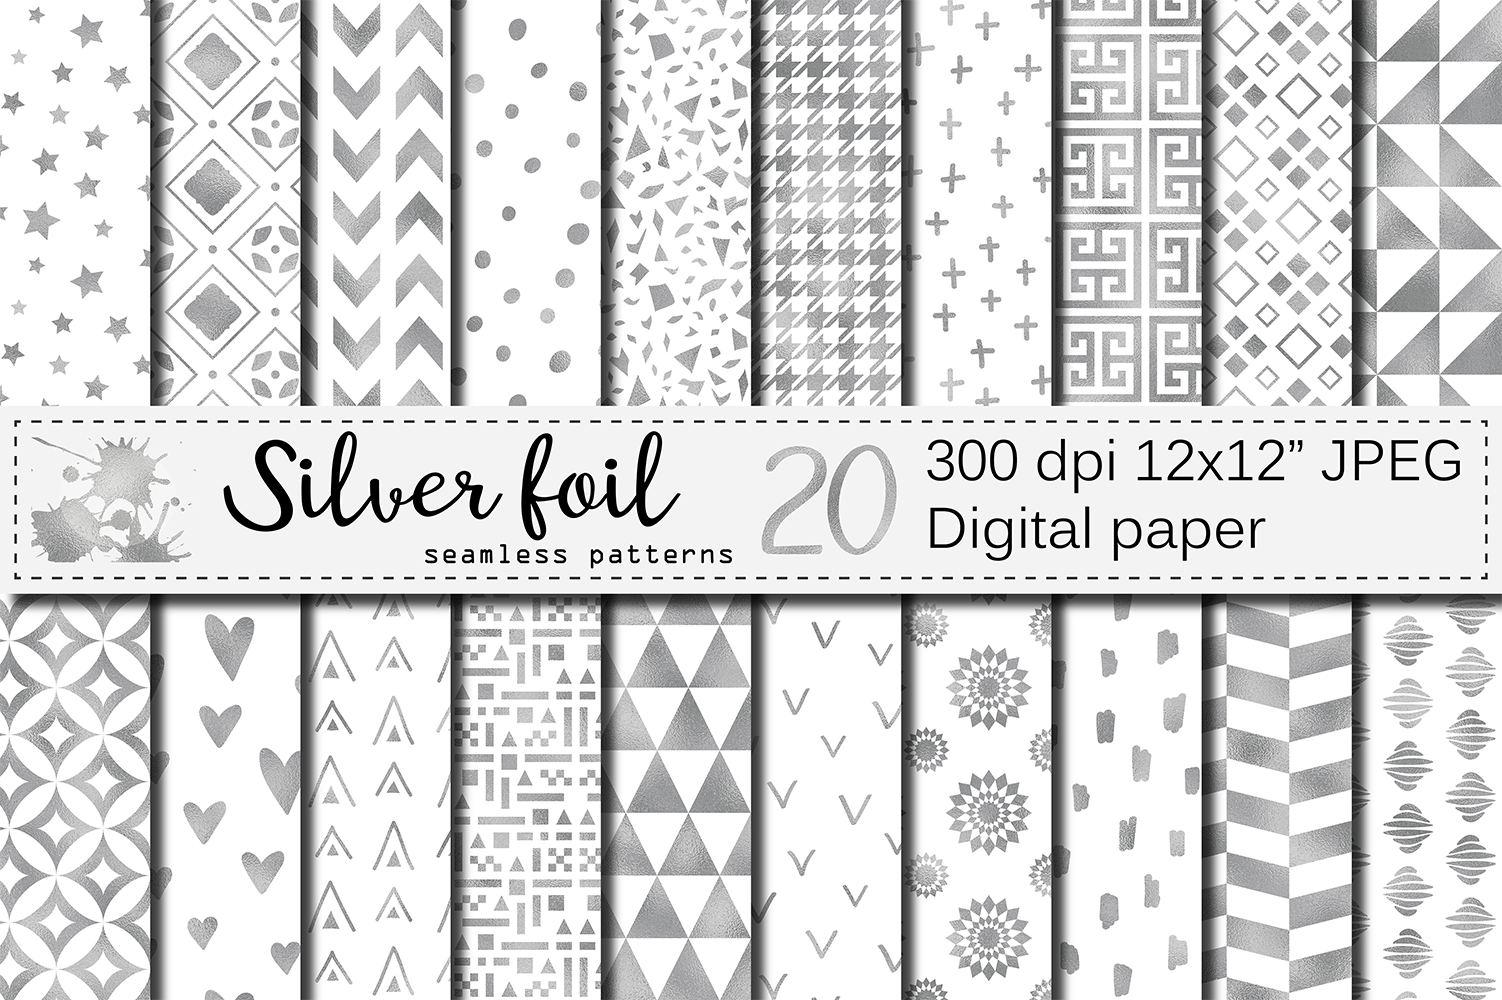 Silver foil seamless geometric patterns, digital papers example image 1